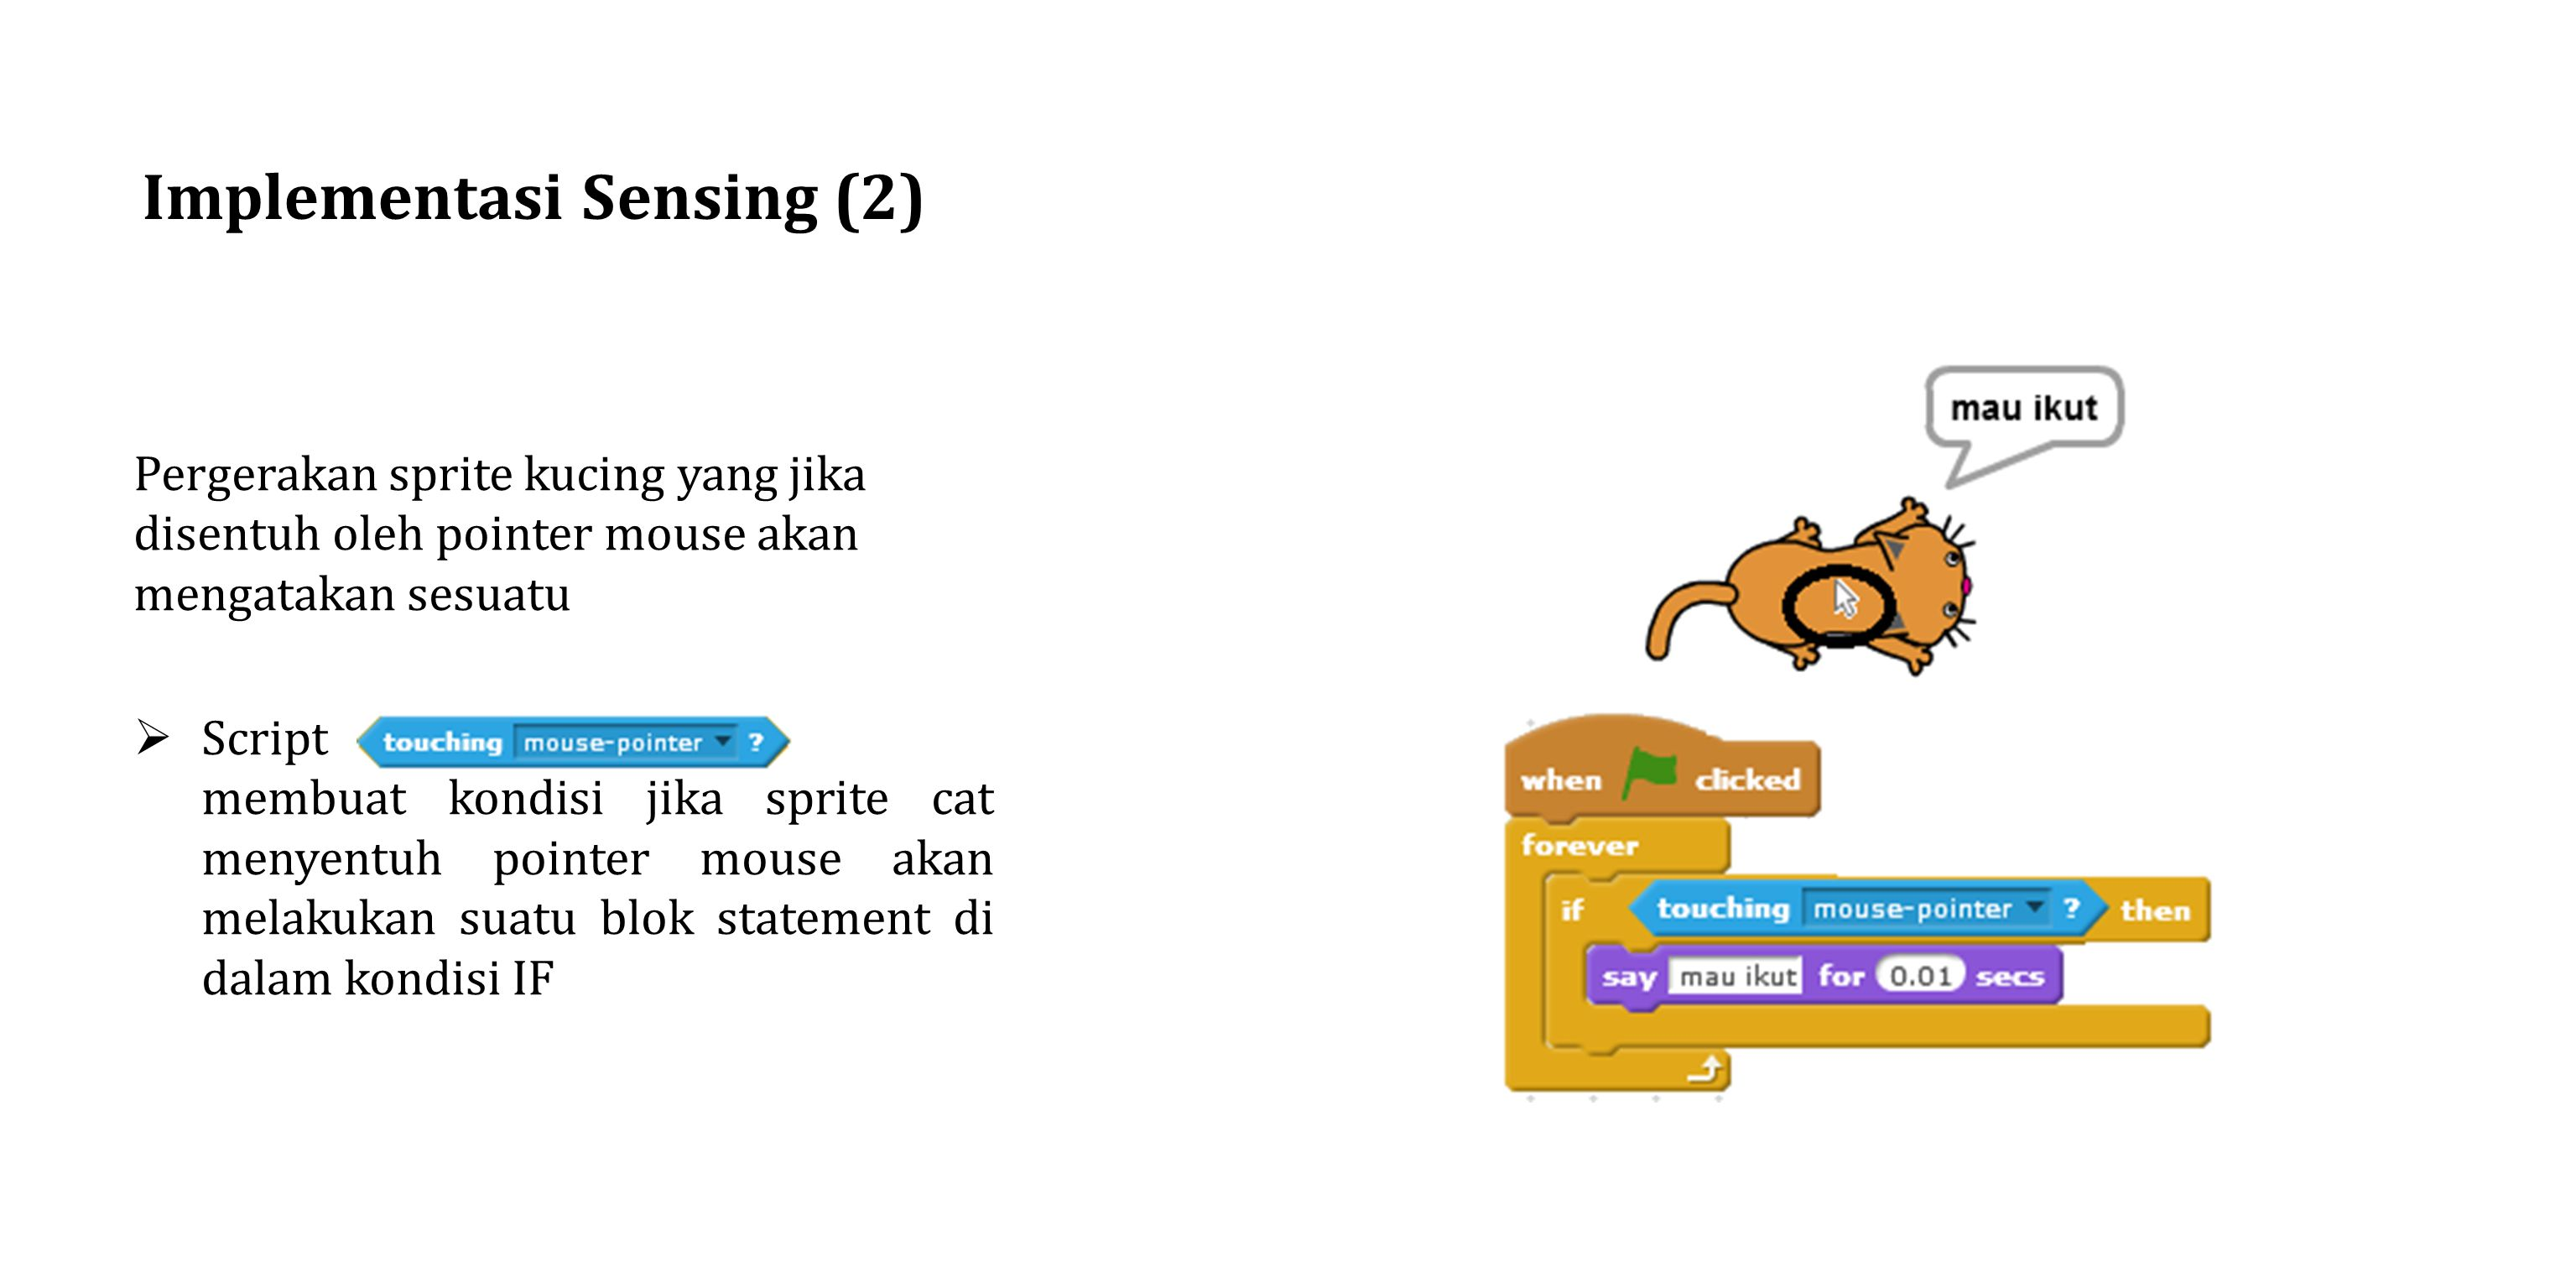 Implementasi Sensing (2)